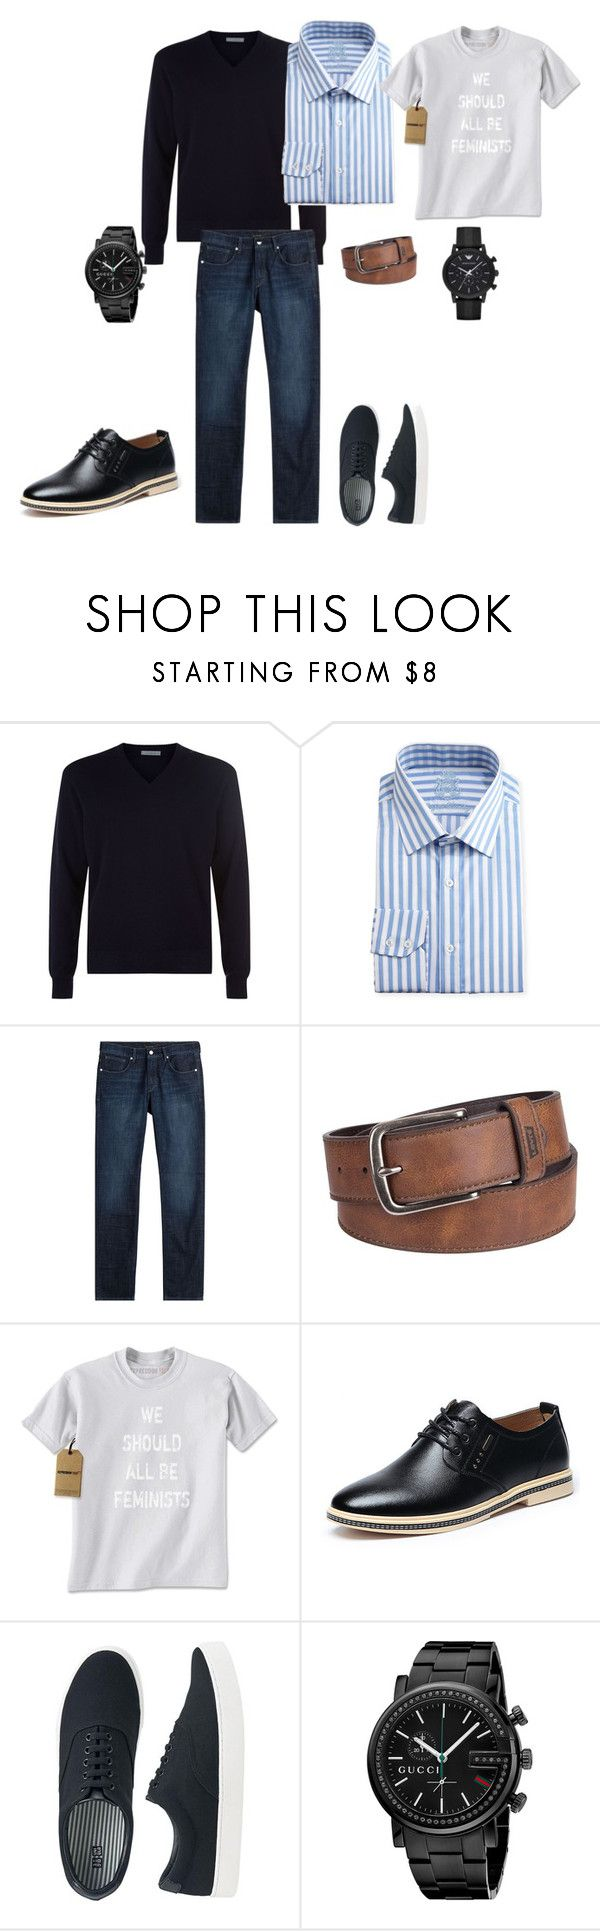 """#1 Мужской стиль - офис и smart casual"" by valery-k ❤ liked on Polyvore featuring malo, English Laundry, Baldessarini, Levi's, Uniqlo, Gucci, Emporio Armani, men's fashion and menswear"